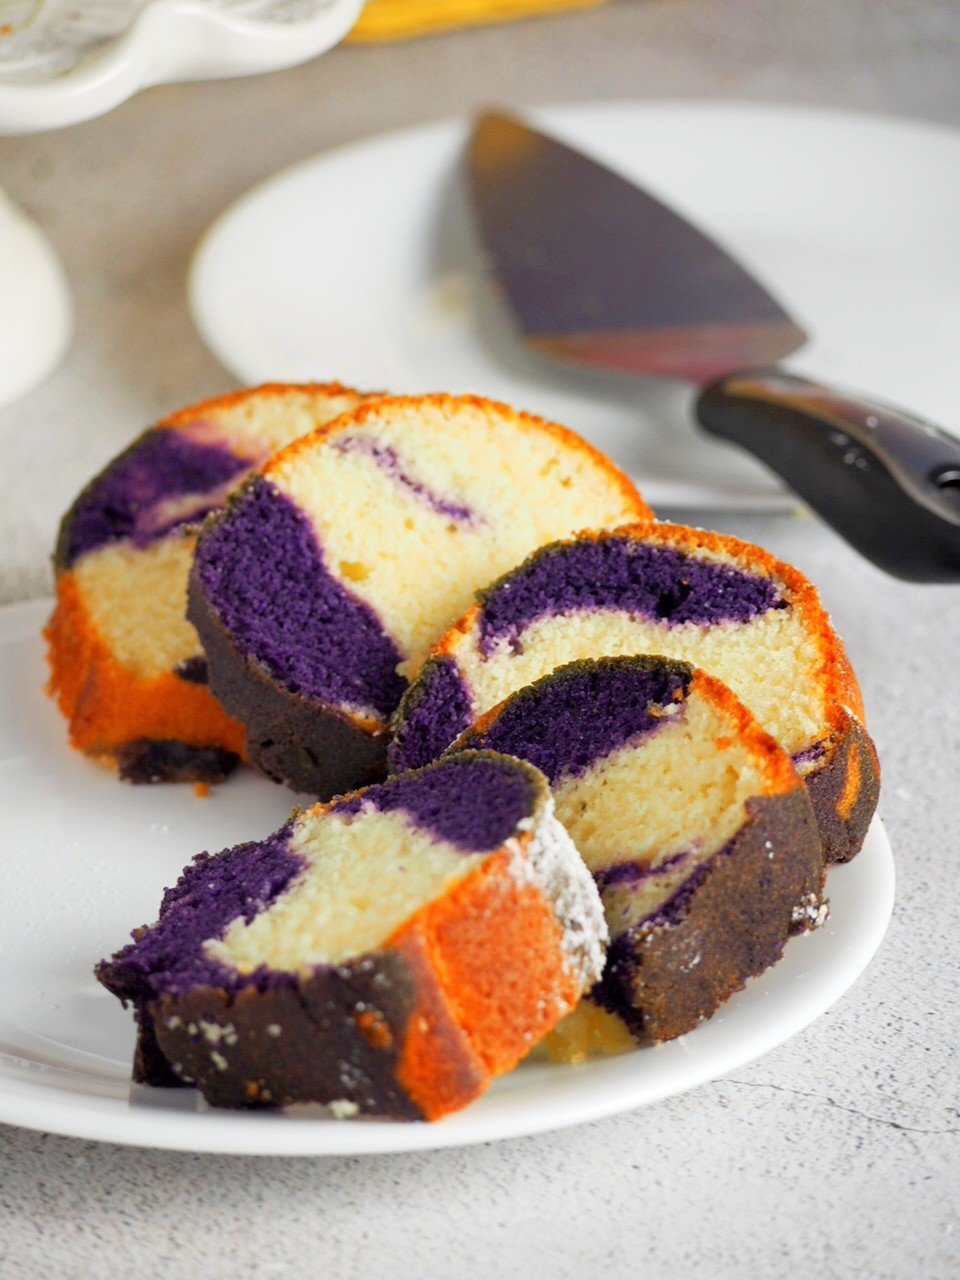 Slices of Ube Marble Bundt Cake arranged on a serving plate.